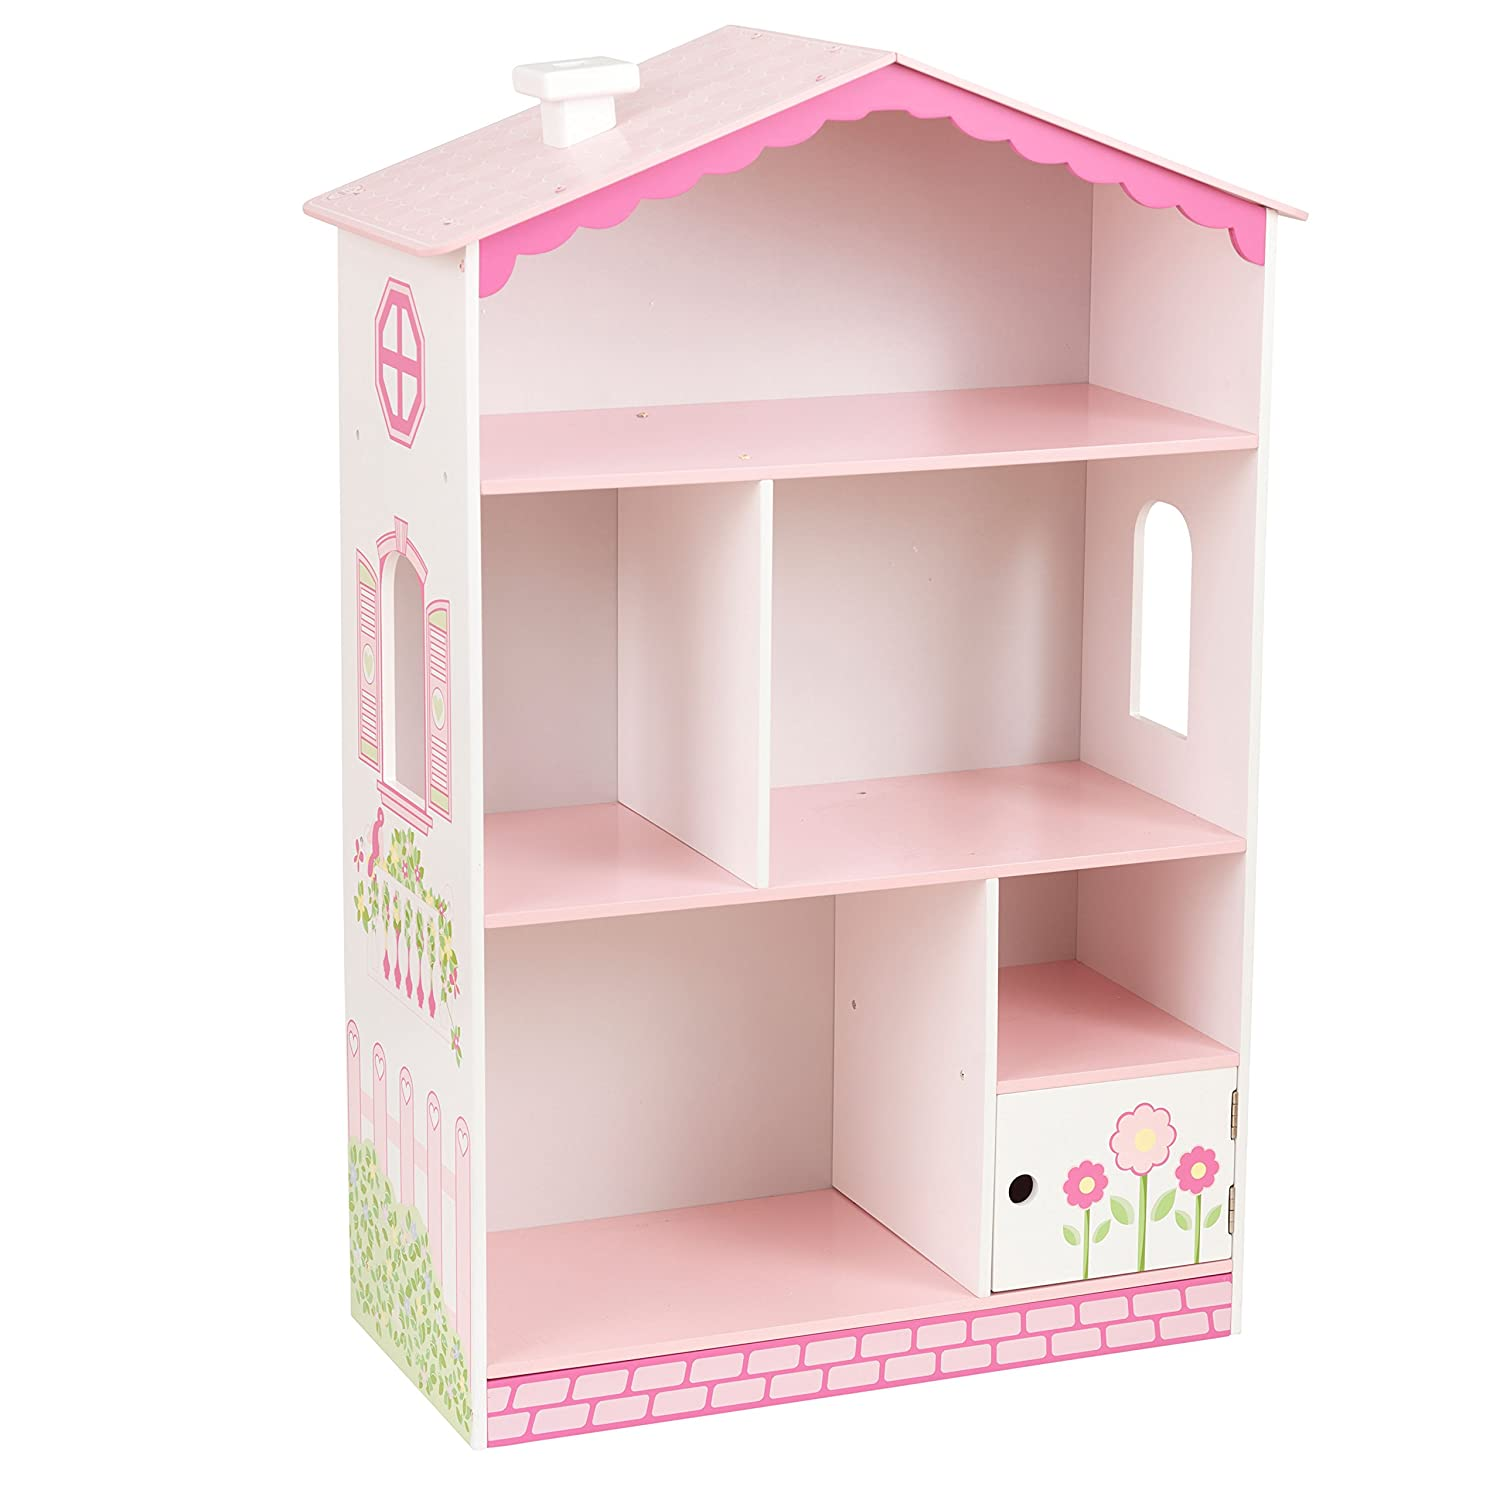 KidKraft 14604 Wooden Doll House Cottage Bookcase